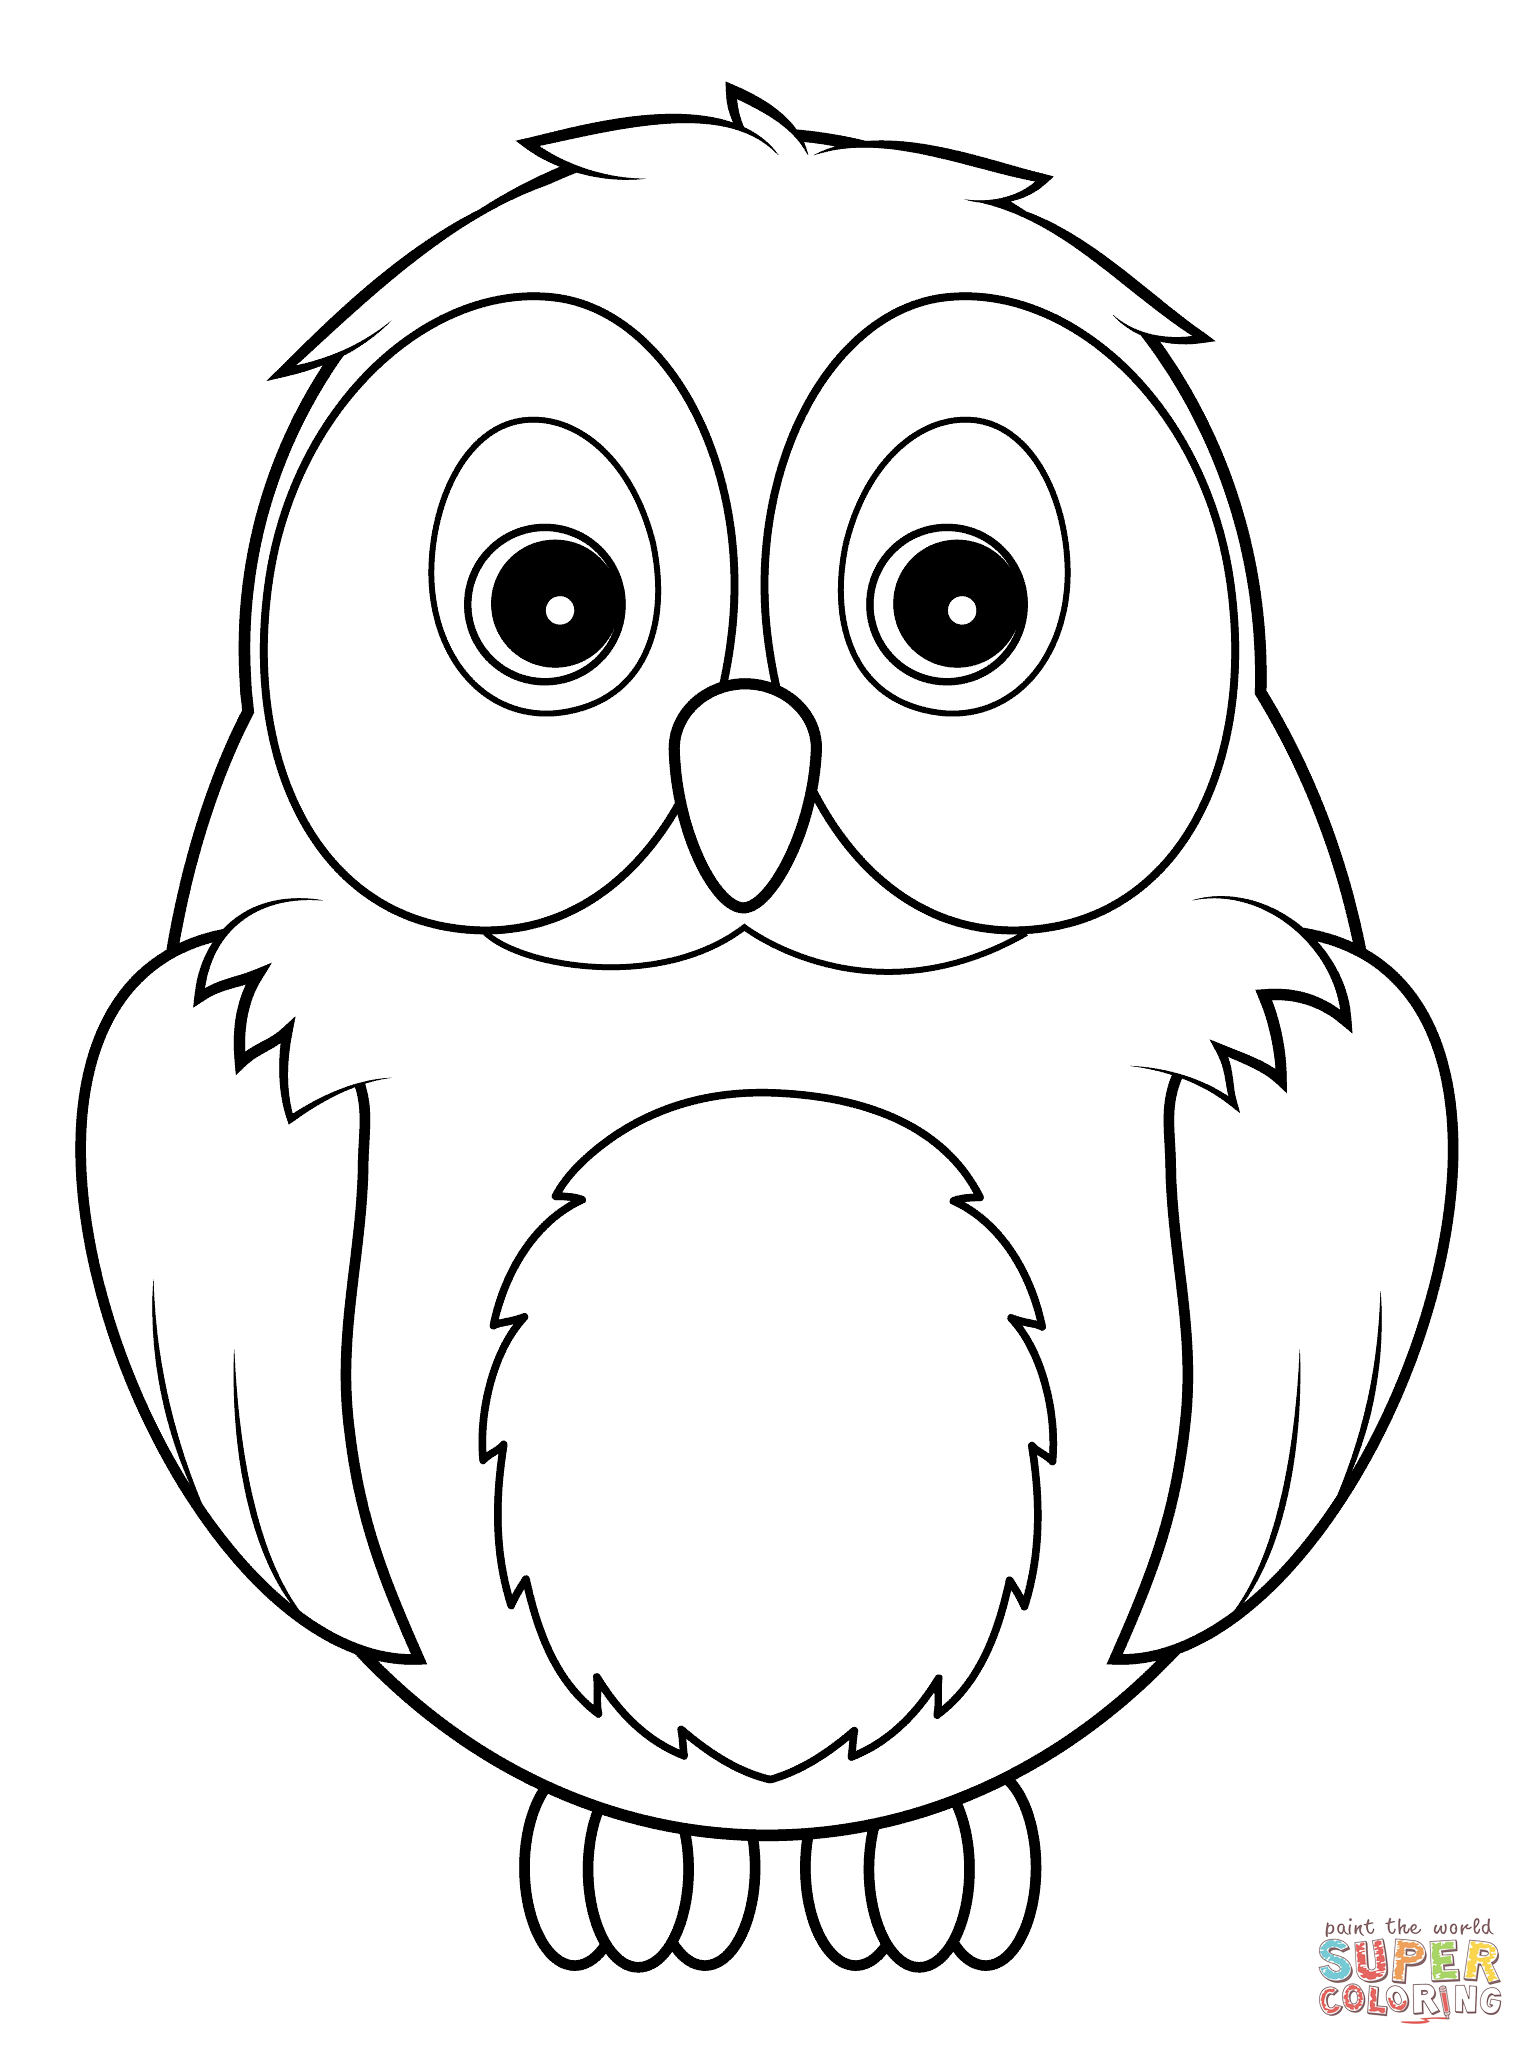 owl images for coloring baby owls coloring sheet to print images for coloring owl